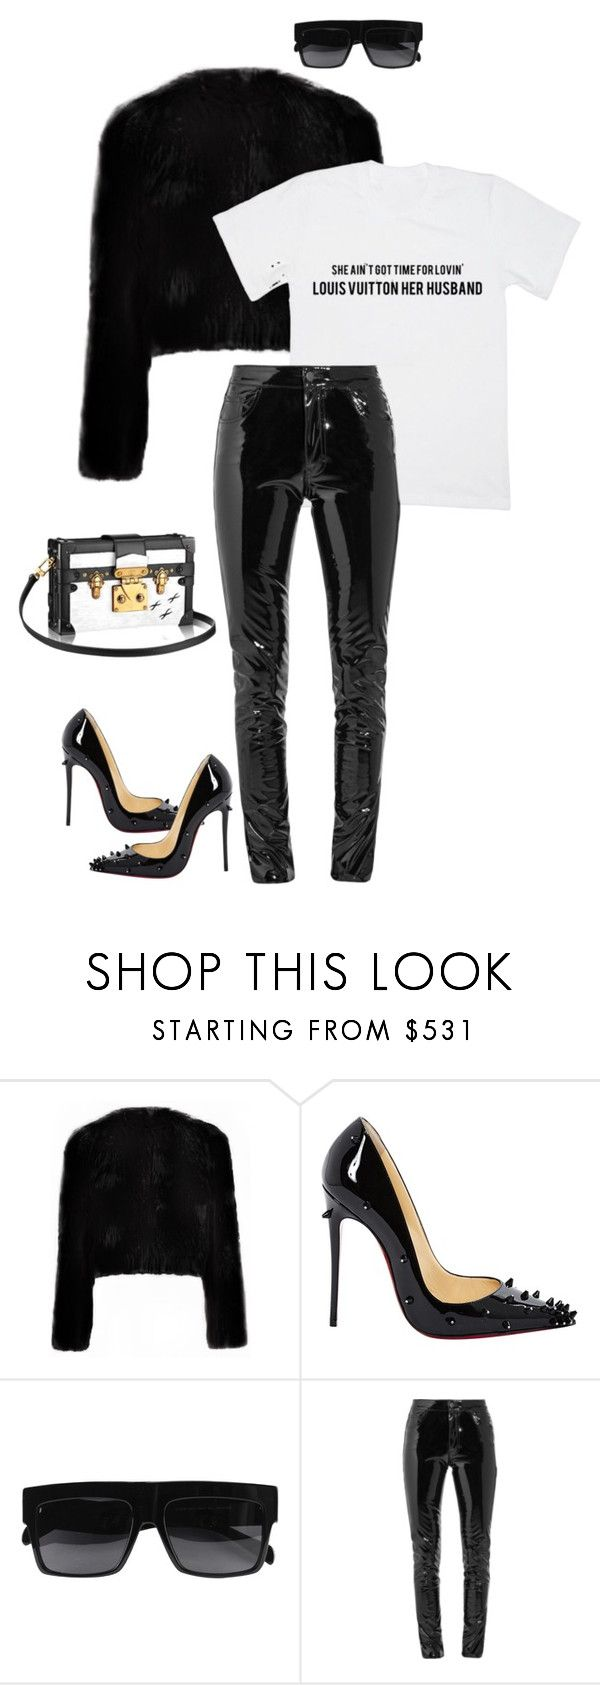 """""""Untitled #1051"""" by dianadolce ❤ liked on Polyvore featuring Louis Vuitton, Christian Louboutin, CÉLINE and Anthony Vaccarello"""